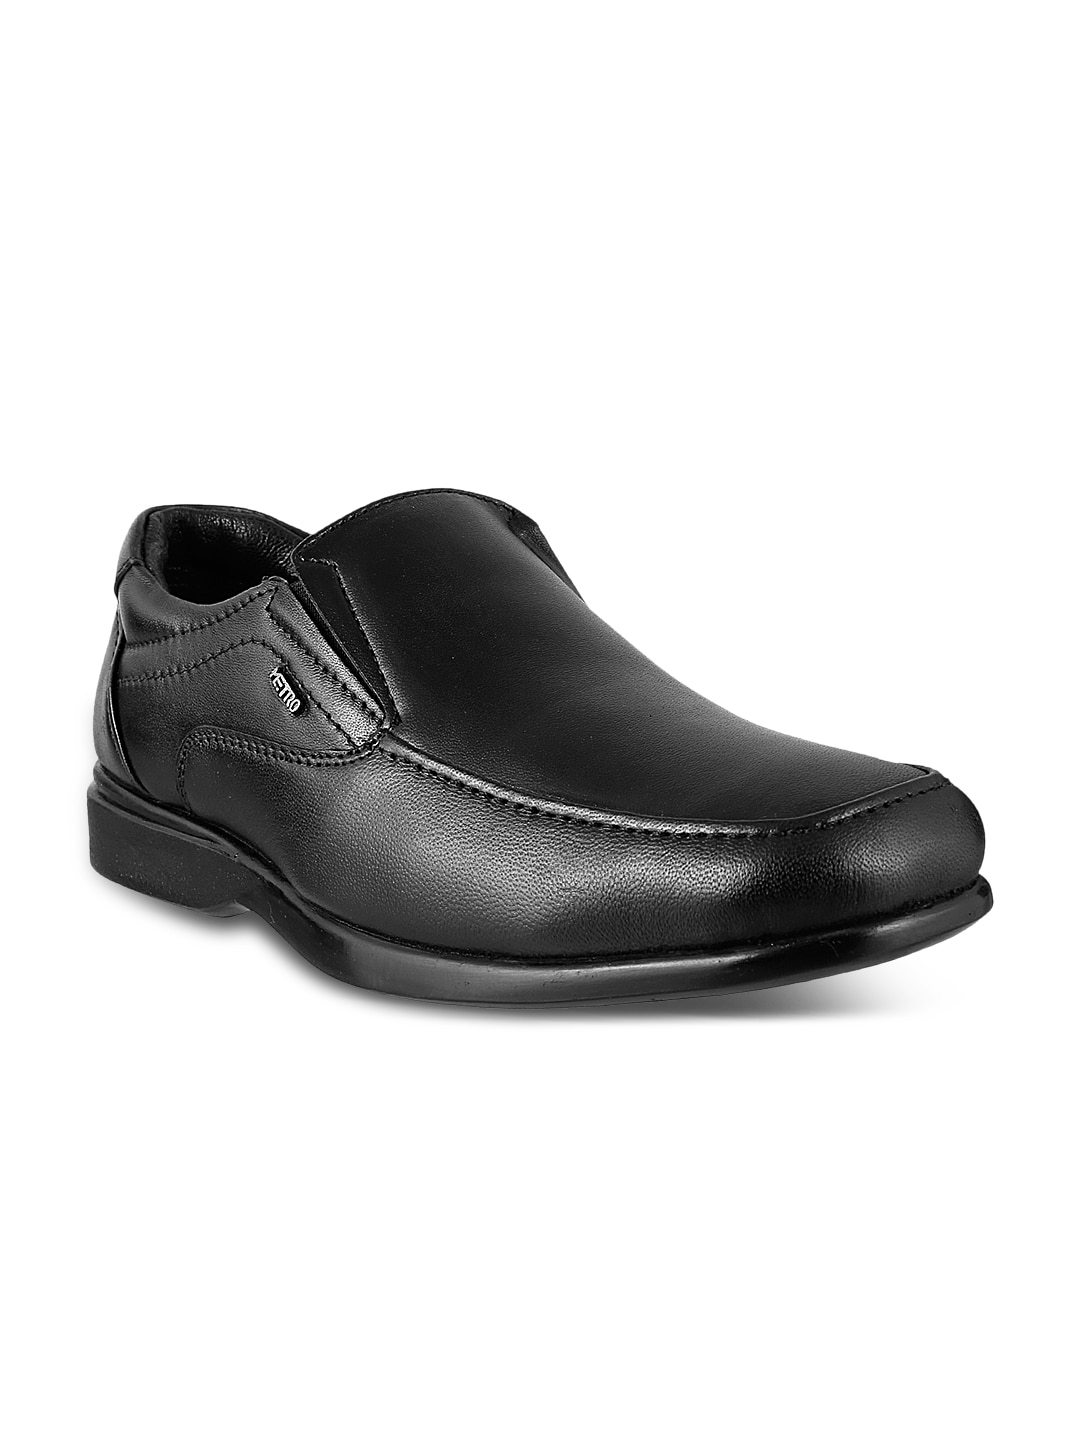 114f86a4b84e8d Metro 19-2540-11-44-black Men Black Leather Formal Shoes- Price in India